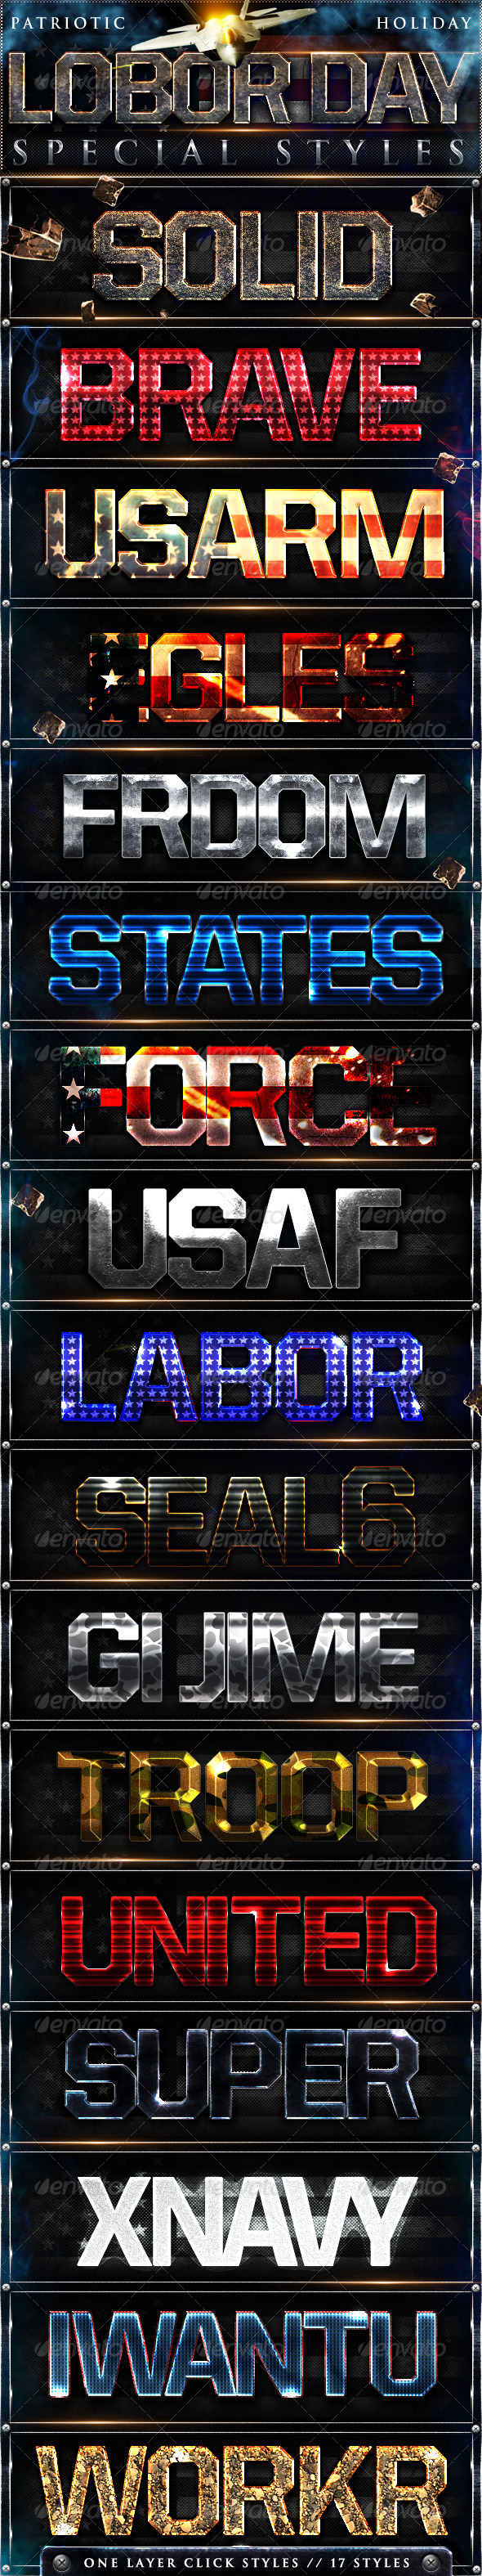 Graphic River Labor Day Photoshop Styles Add-ons -  Photoshop  Styles  Text Effects 507388